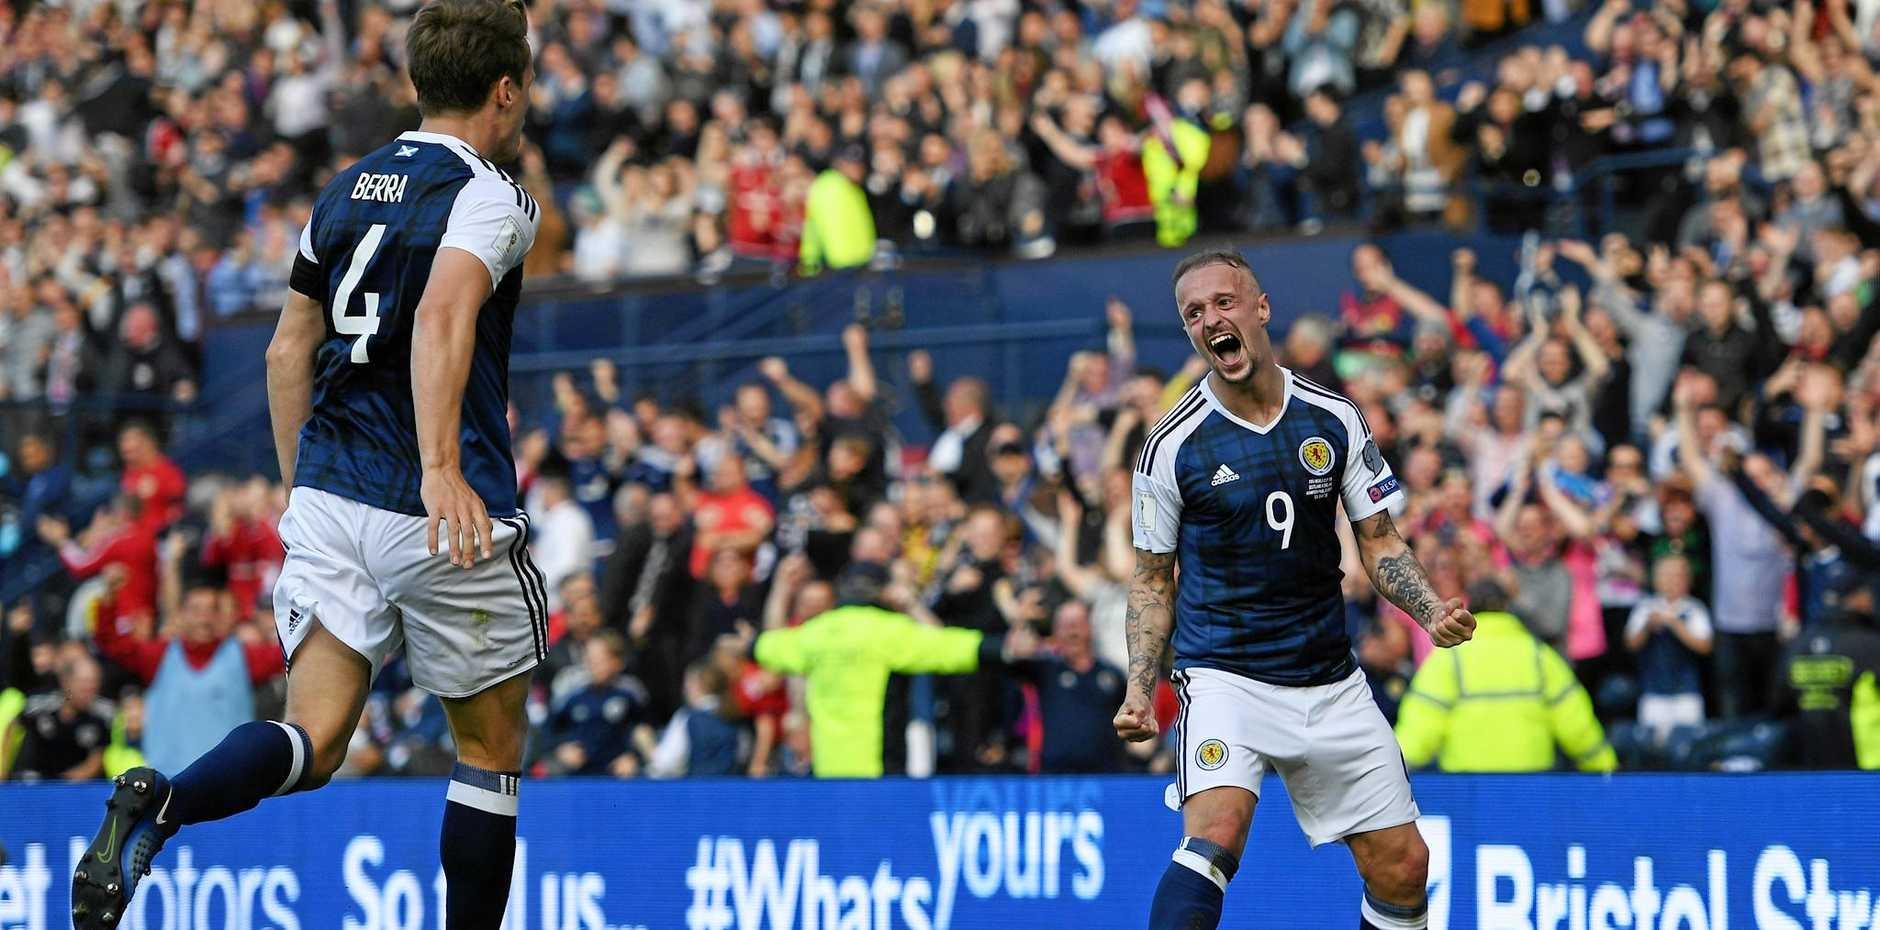 STUNNING STRIKE: Scotland's Leigh Griffiths celebrates scoring his side's second goal during the FIFA 2018 World Cup Qualifier against England at Hampden Park.